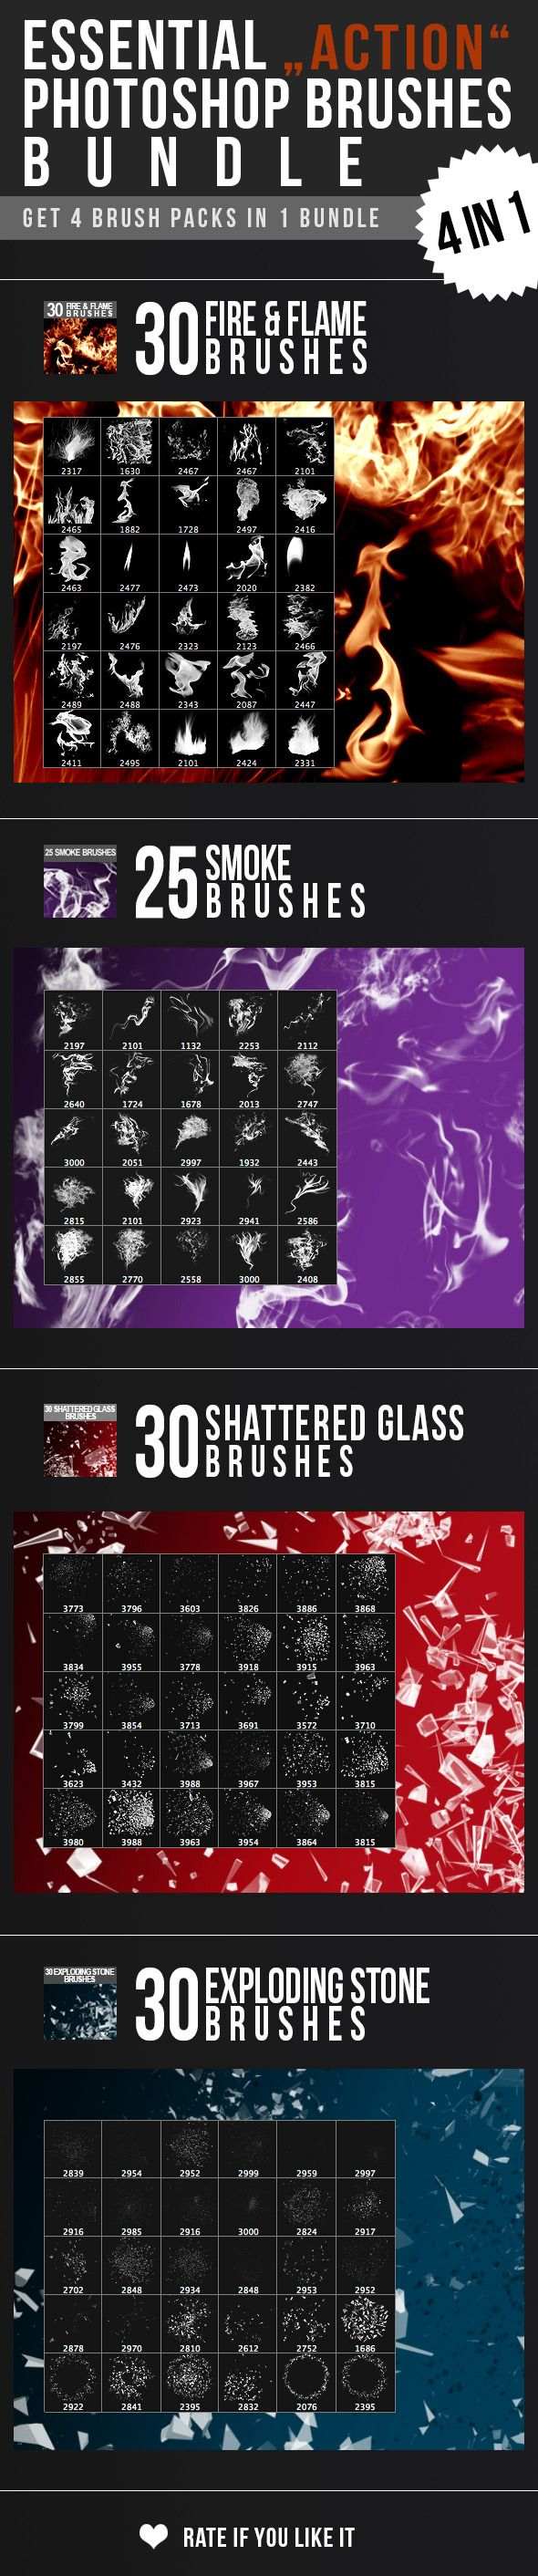 """Essential """"Action"""" Photoshop Brushes Bundle  Get 4 Brush Packs in 1 Bundle!  FIRE - SMOKE - SHATTERED GLASS - EXPLODING STONES  http://graphicriver.net/item/essential-action-photoshop-brushes-bundle/11203722?ref=nada-images"""